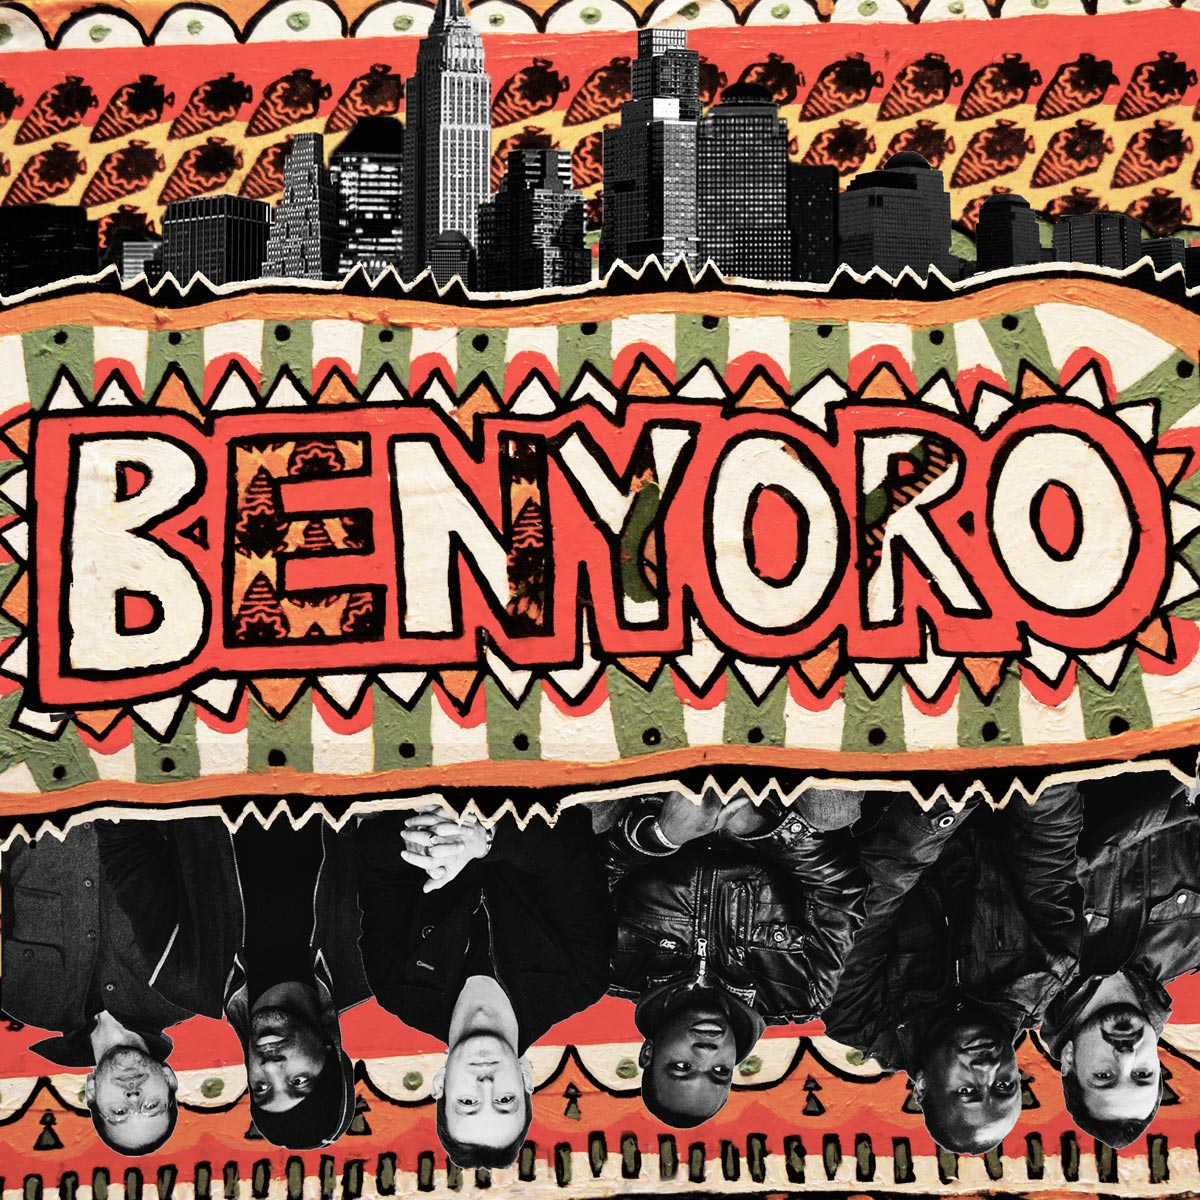 Benyoro - Self-titled